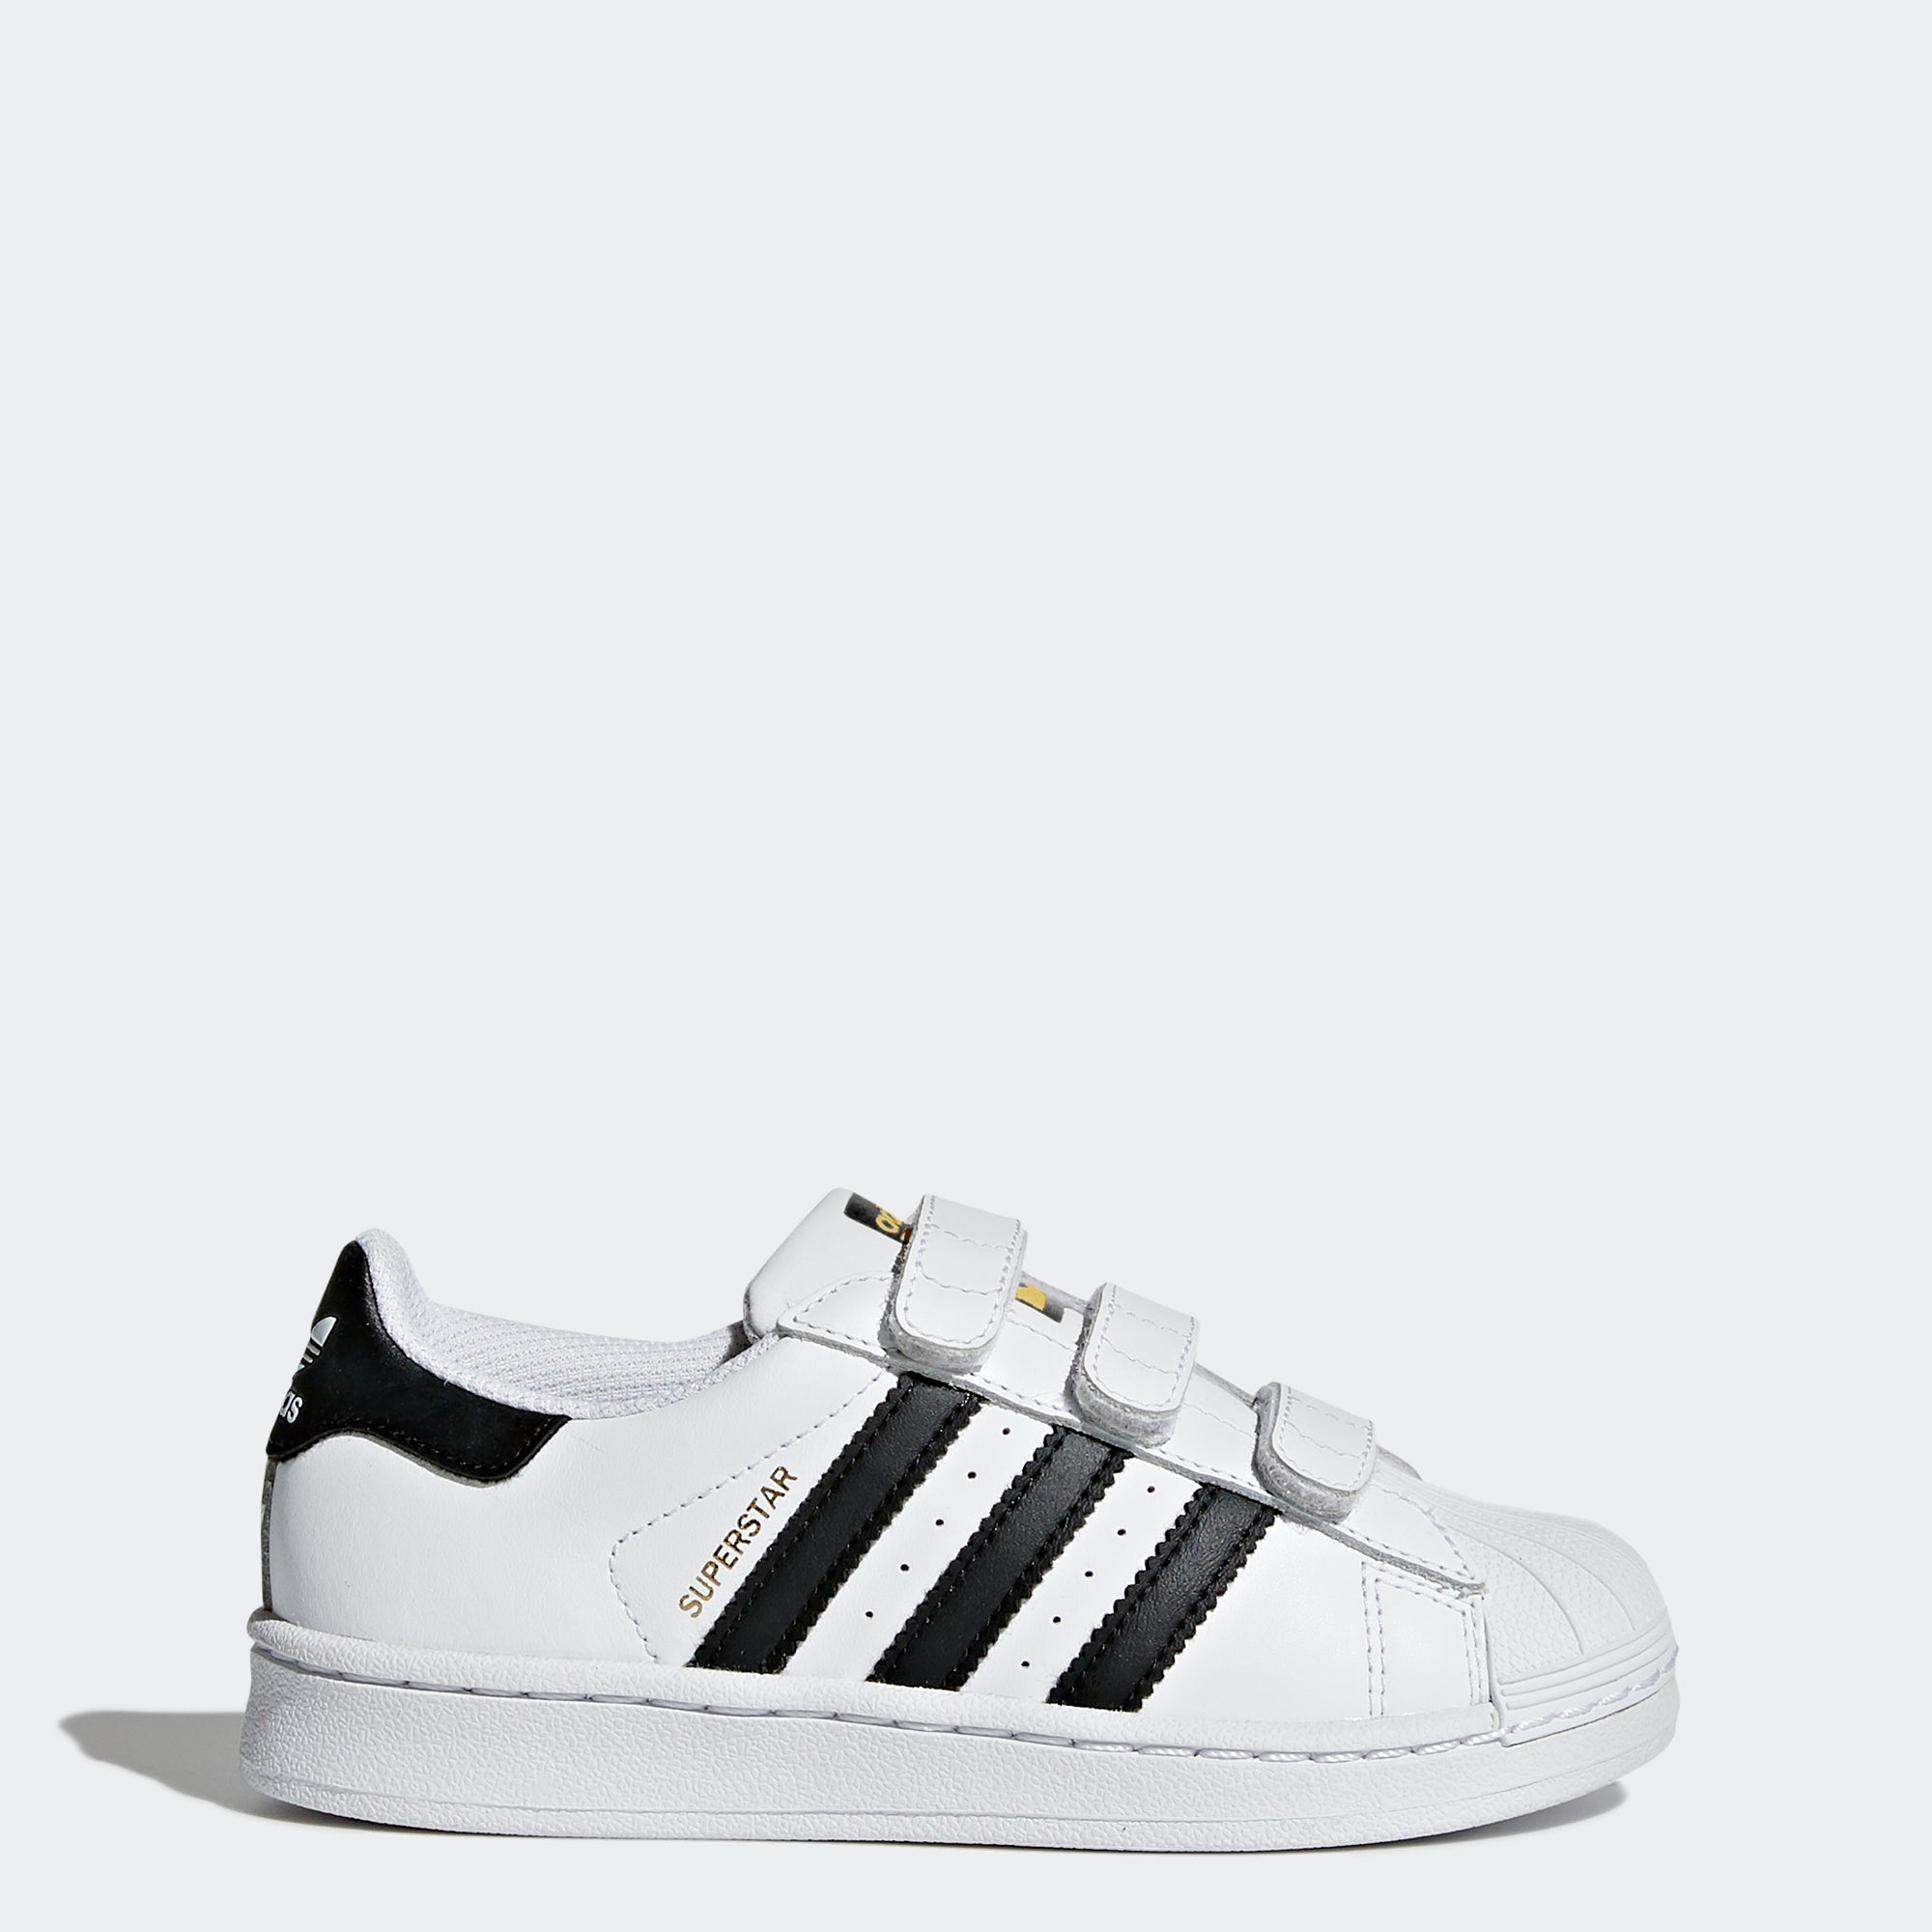 detailed look 88dd2 295d8 adidas Superstar Foundation Shoes White B26070 | Chicago ...